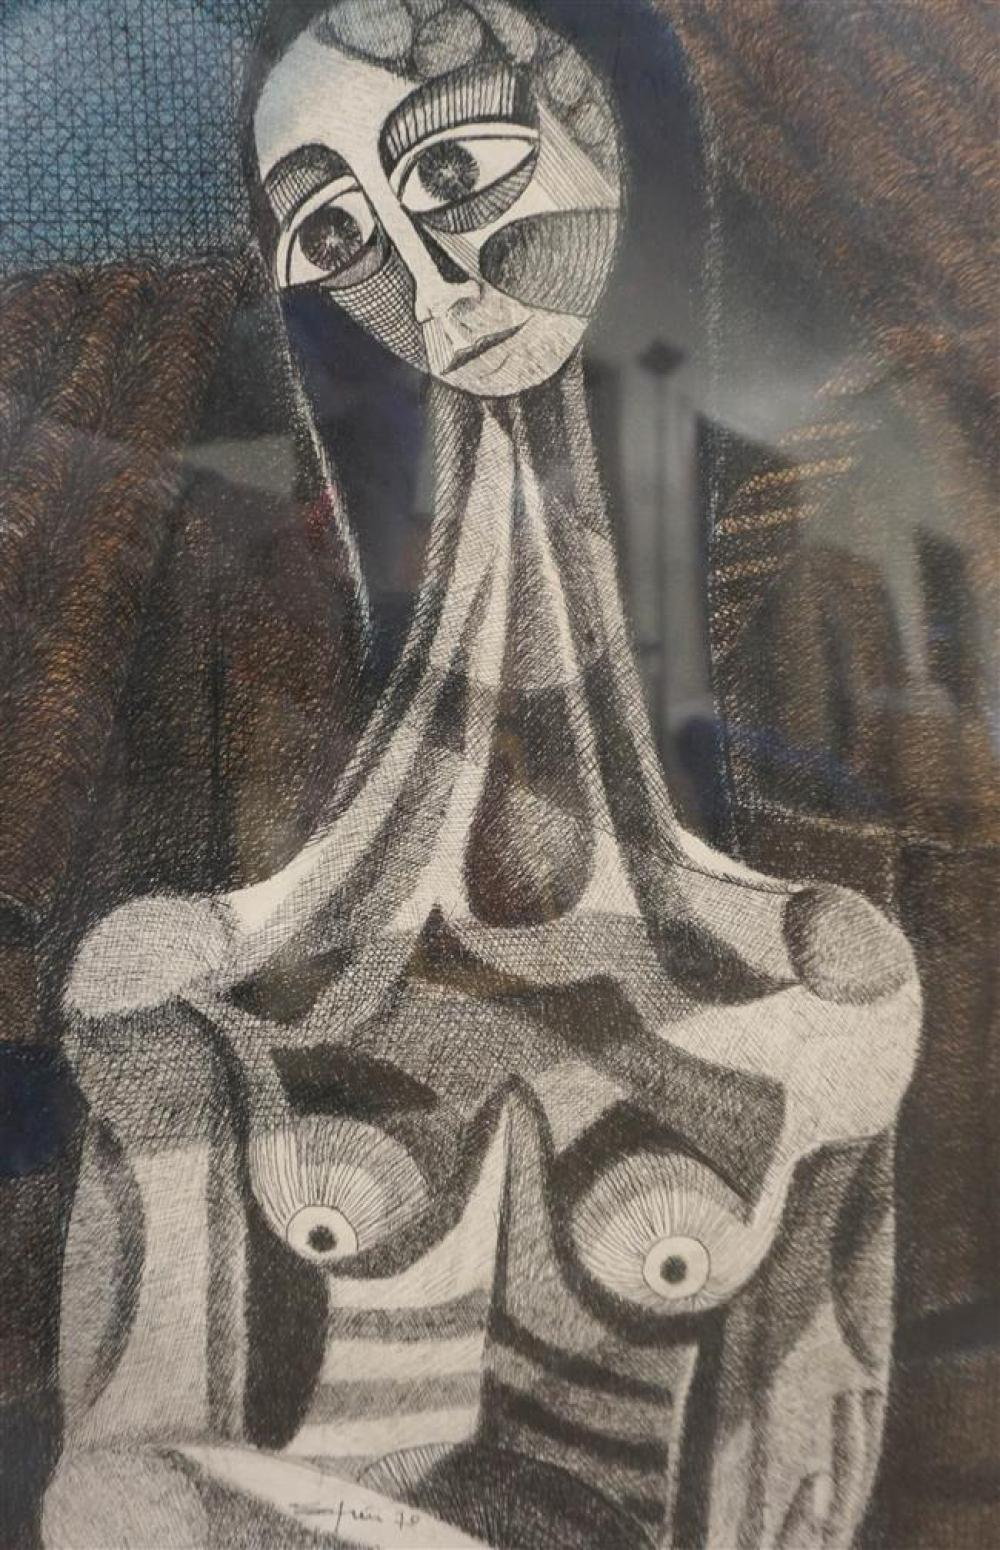 Etienne Ret, Figure, Etching in Color, Framed, 27 x 18 inches